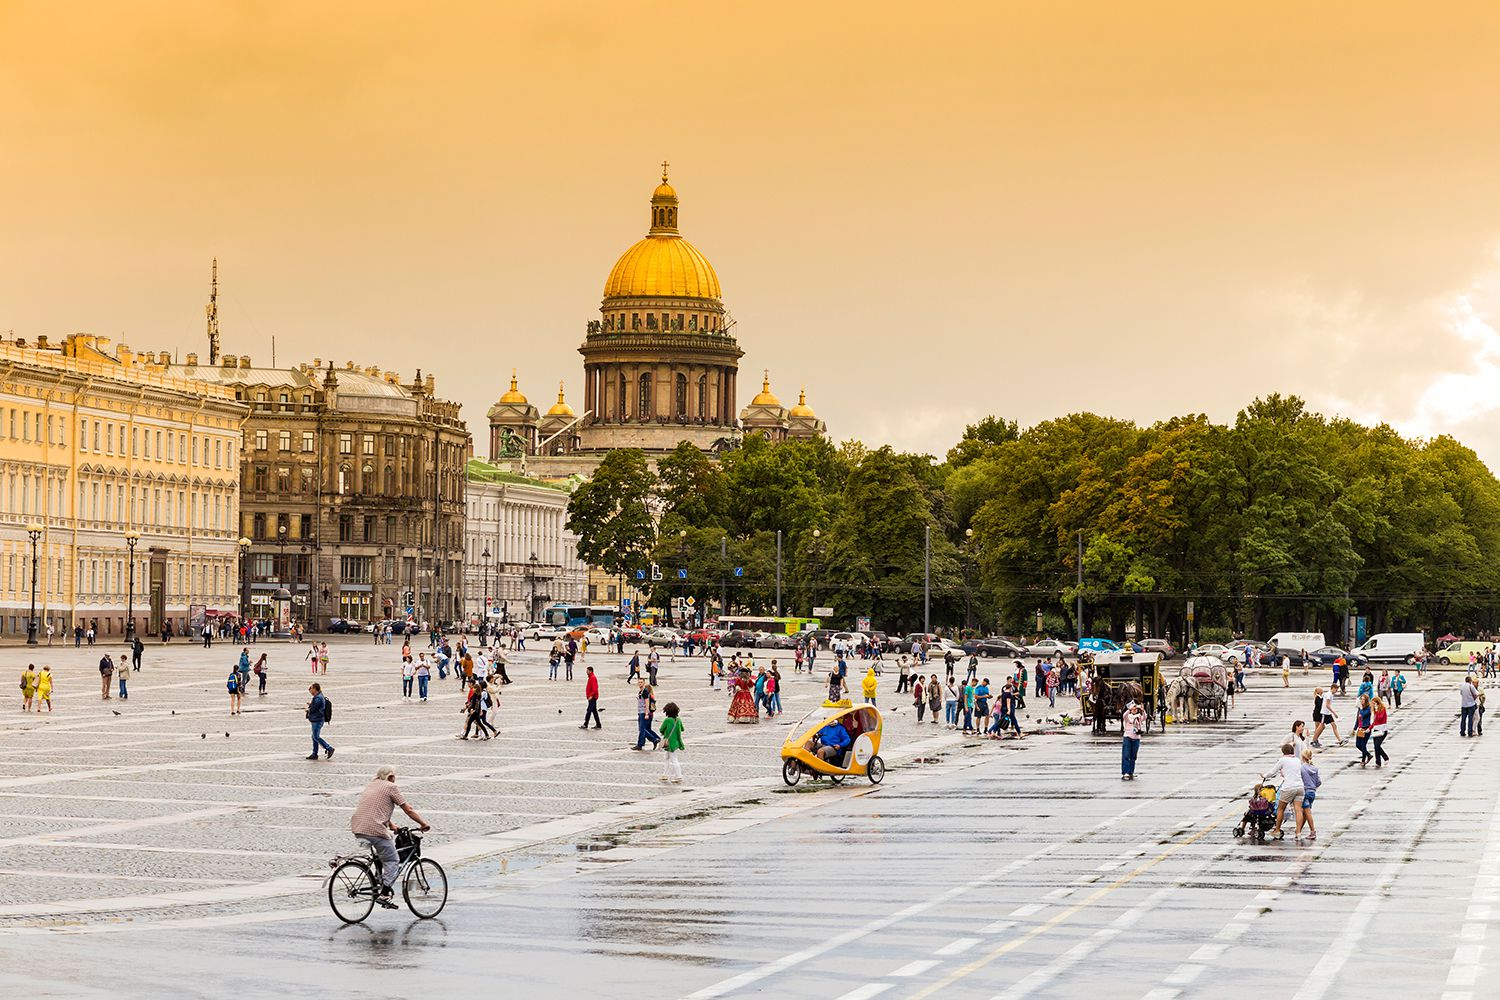 Photos of Russia - Travel Destinations and Culture